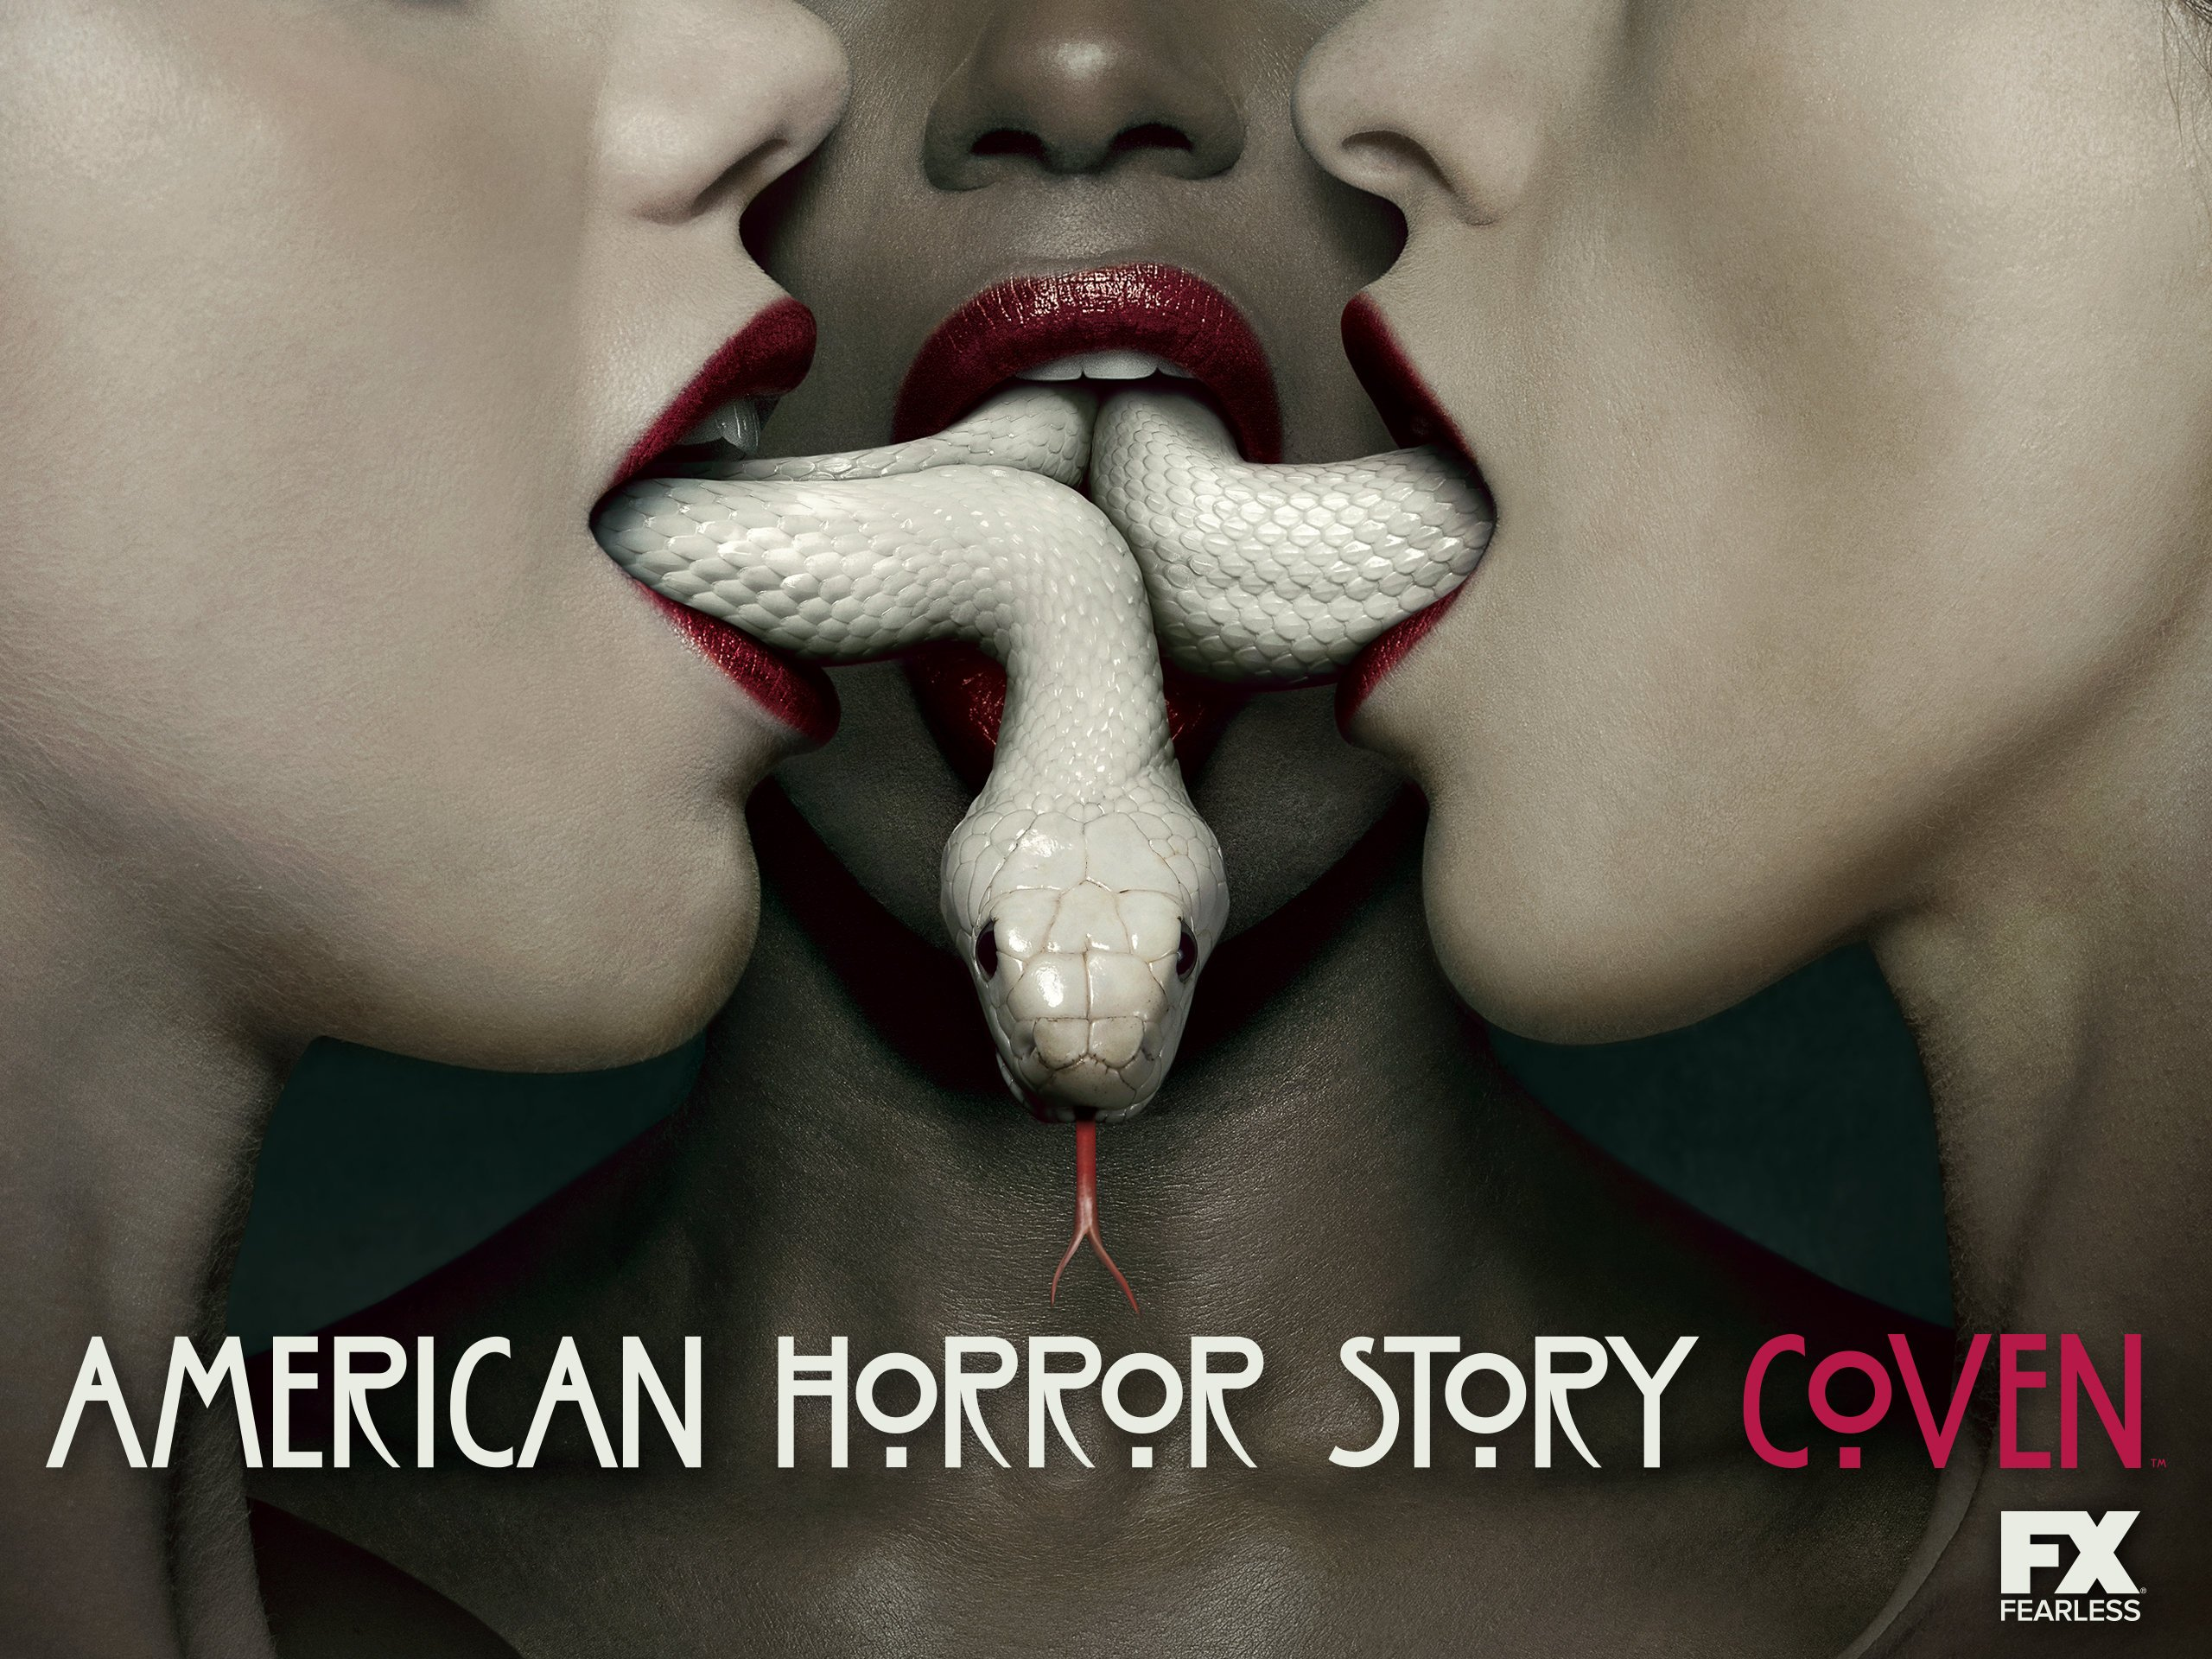 american horror story coven full episode 1 free